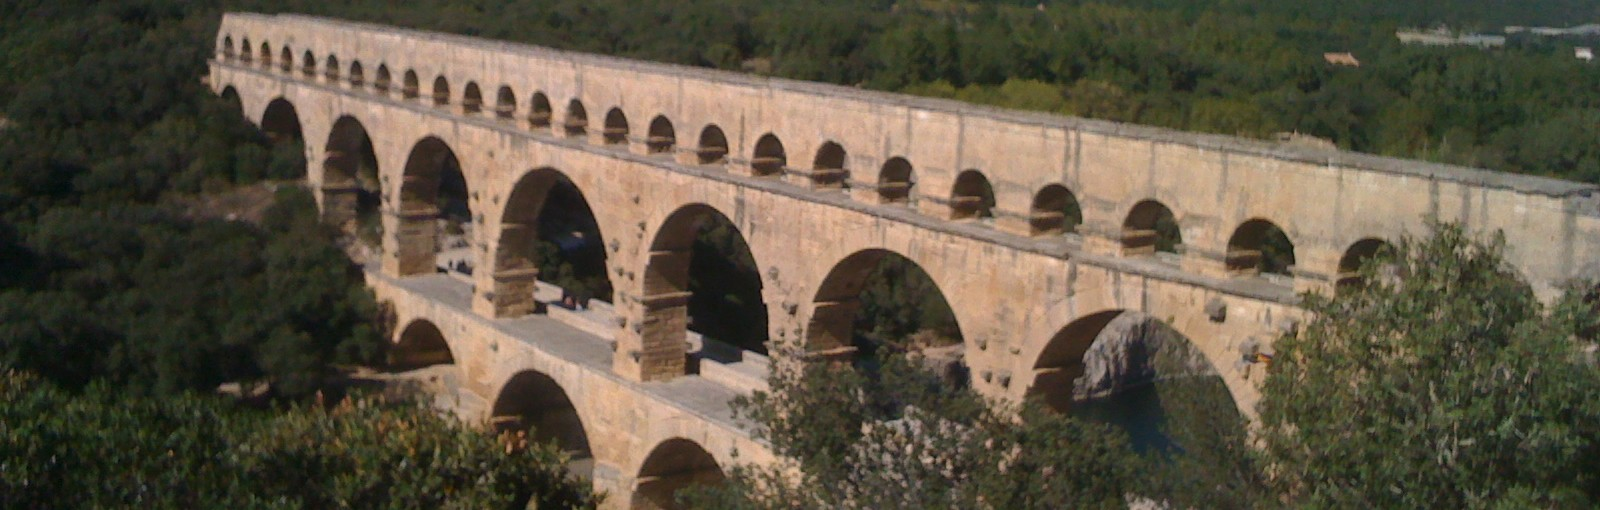 Tours One day in Provence - More Options - Provence - Regional tours